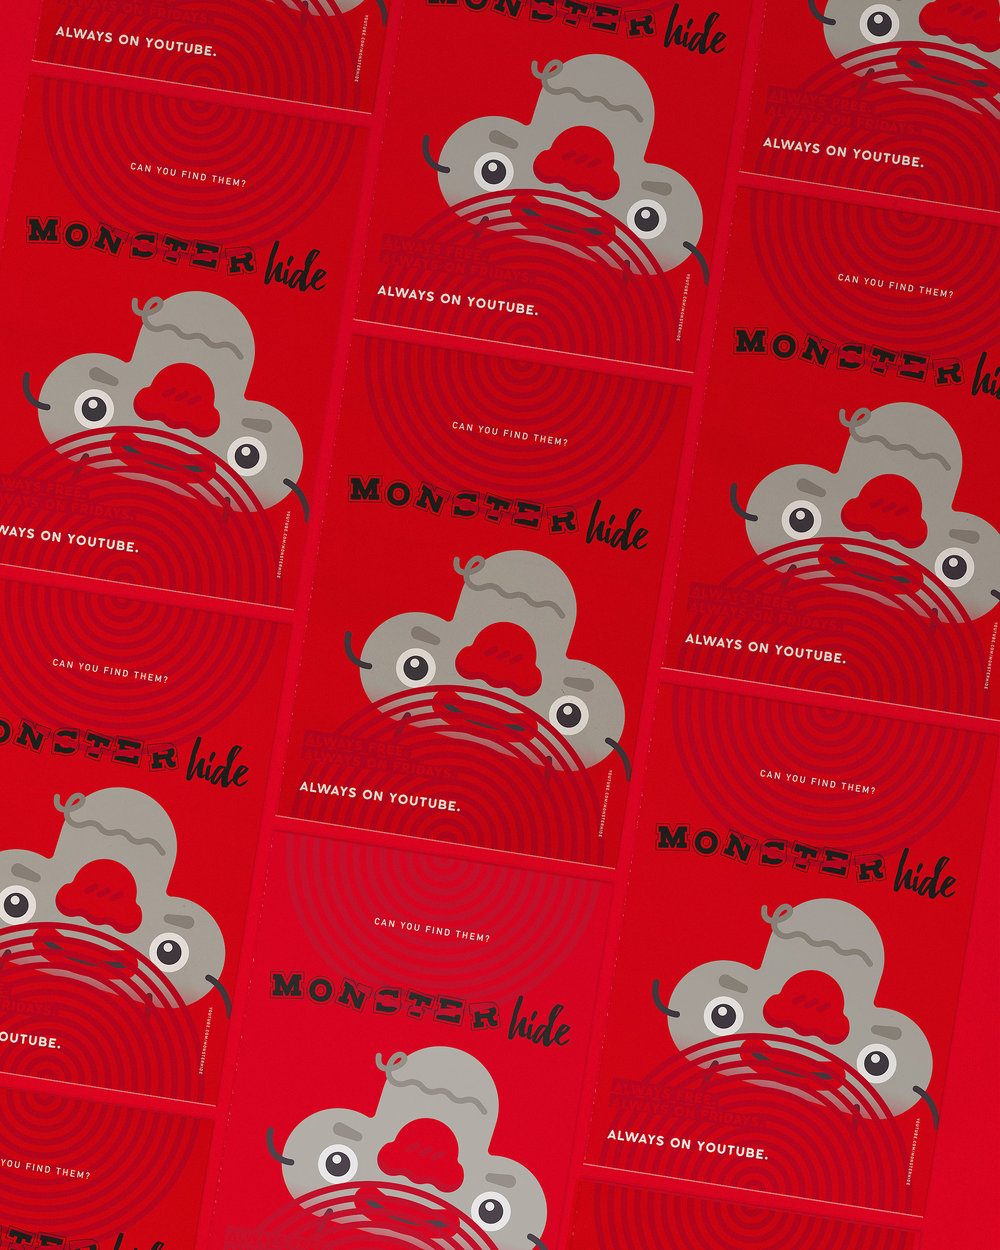 monsterhide professor cards